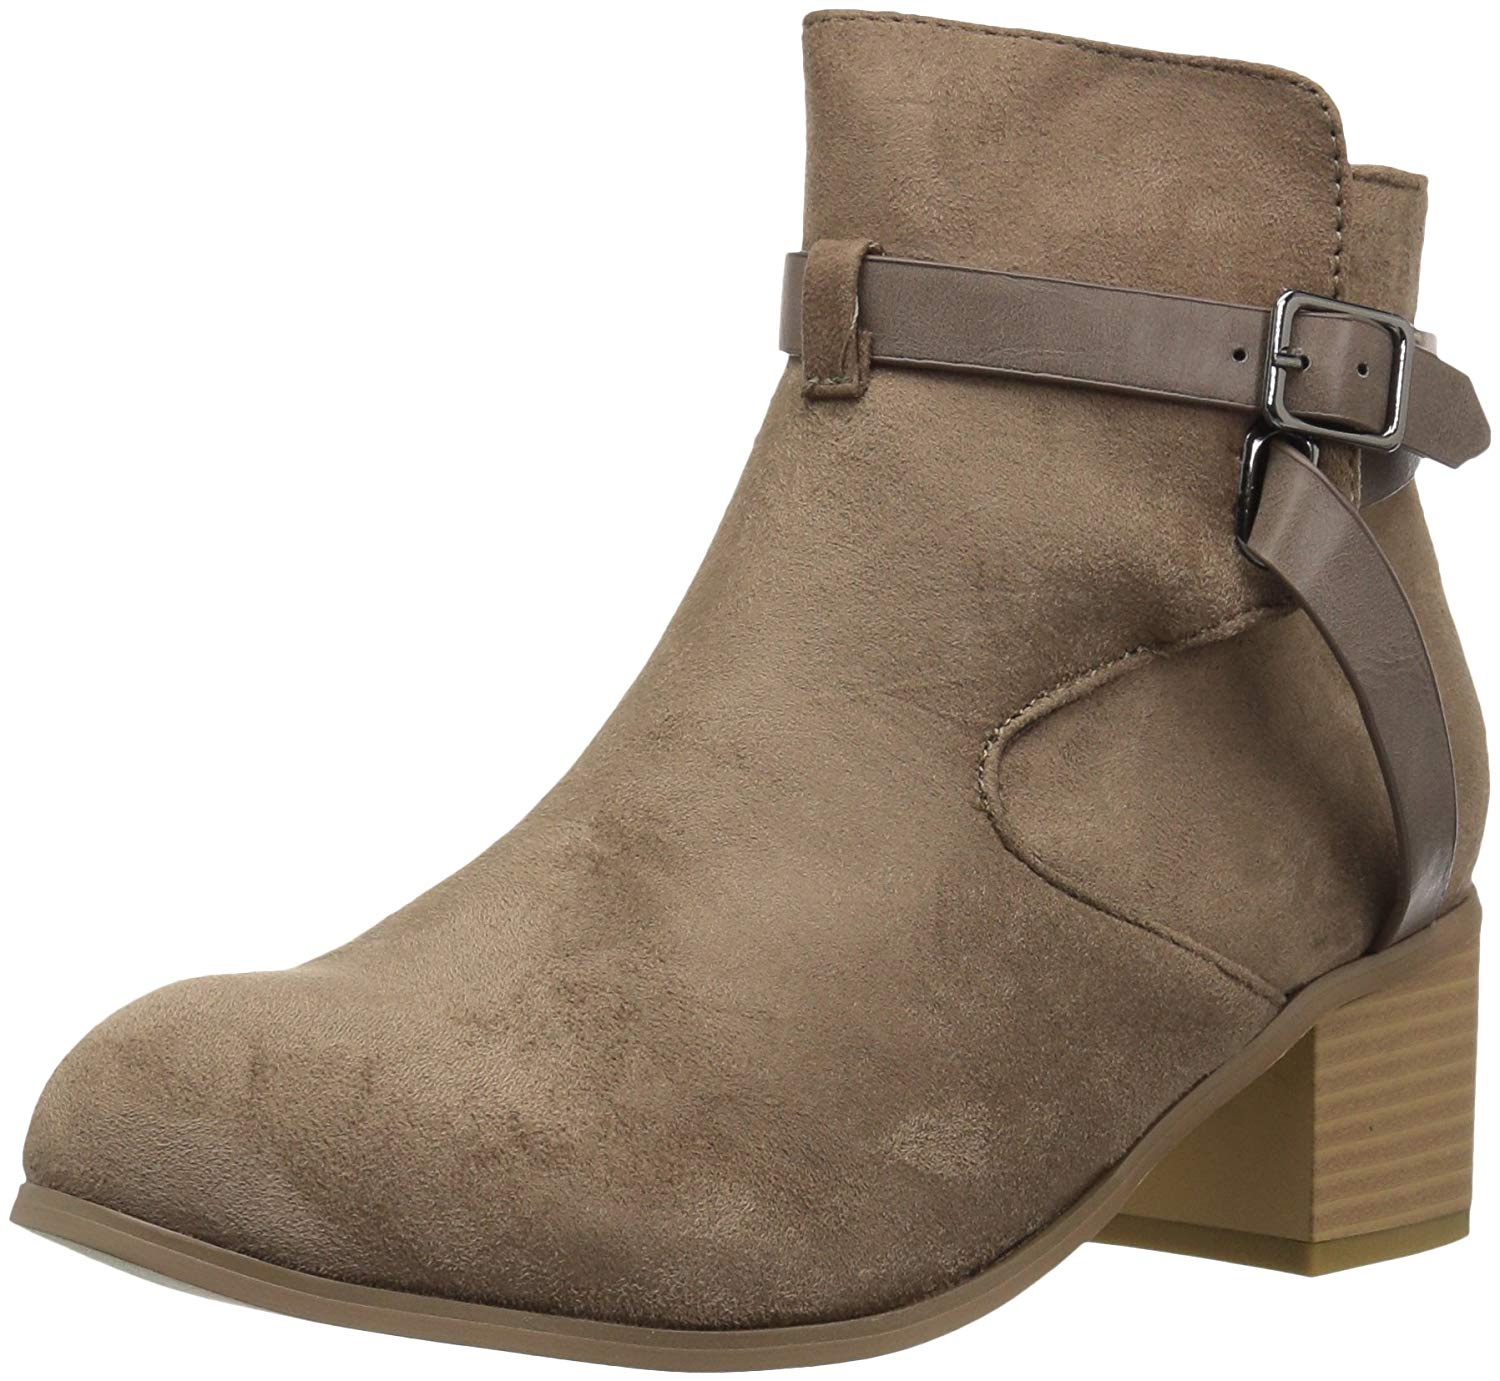 Brinley Co Women S Moreen Ankle Boot